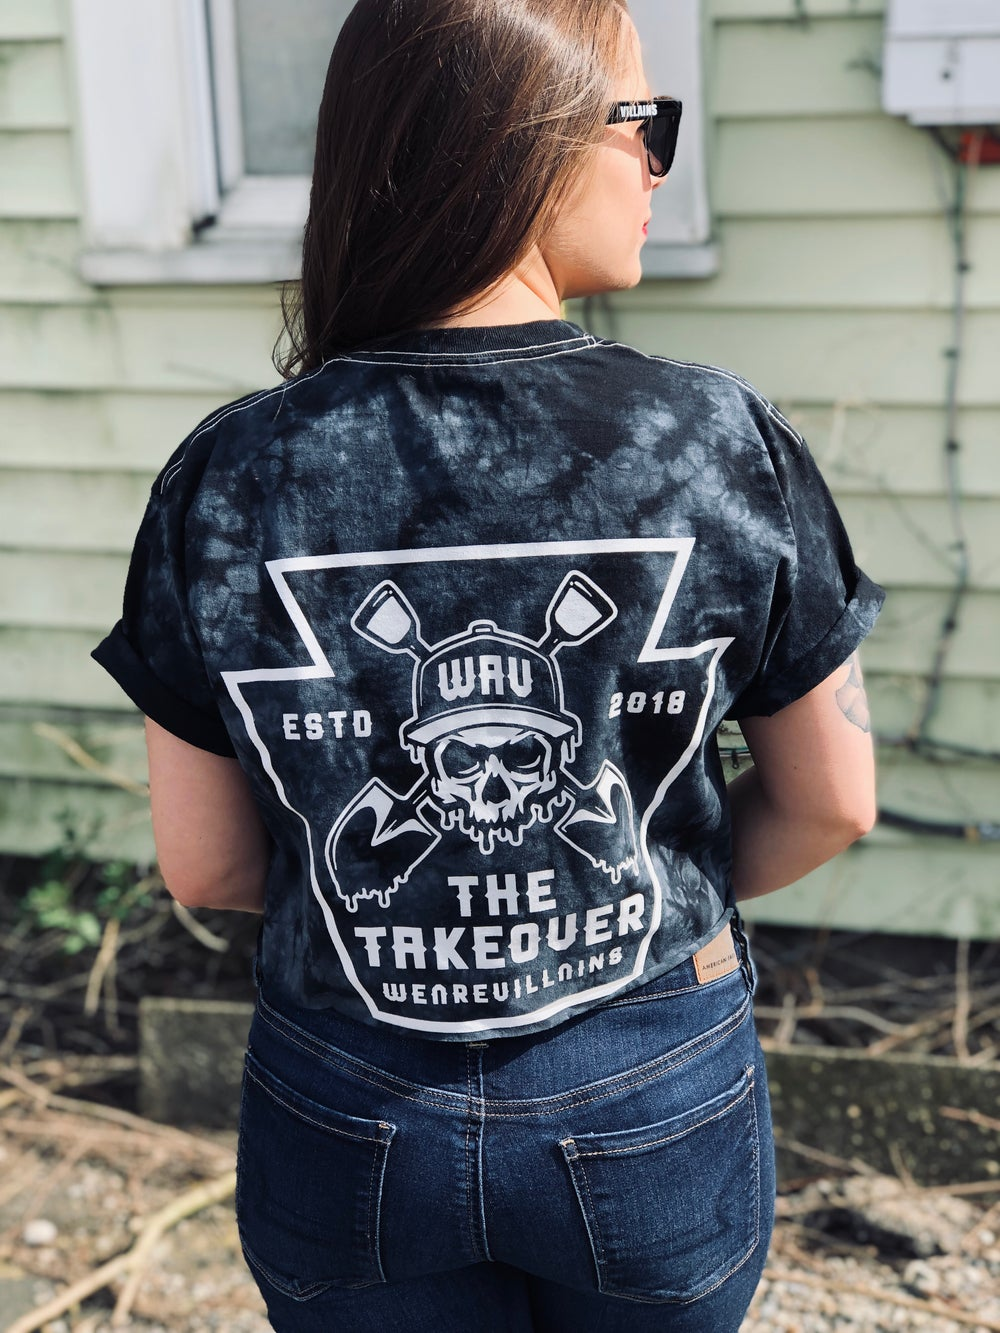 The Takeover black tie dye crop tee